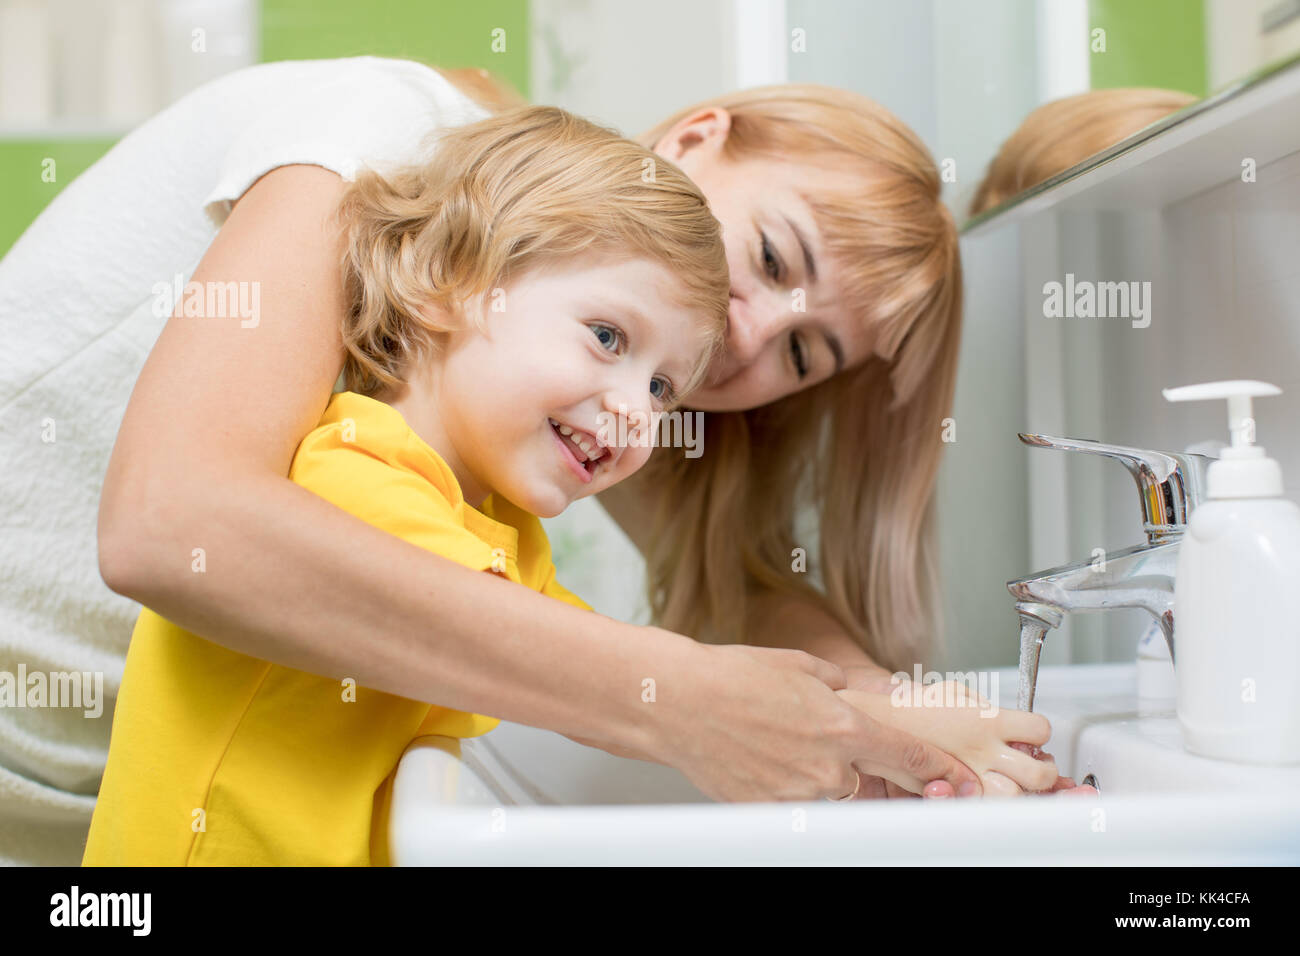 Mother and child son washing their hands in the bathroom. Care and concern for kids. - Stock Image